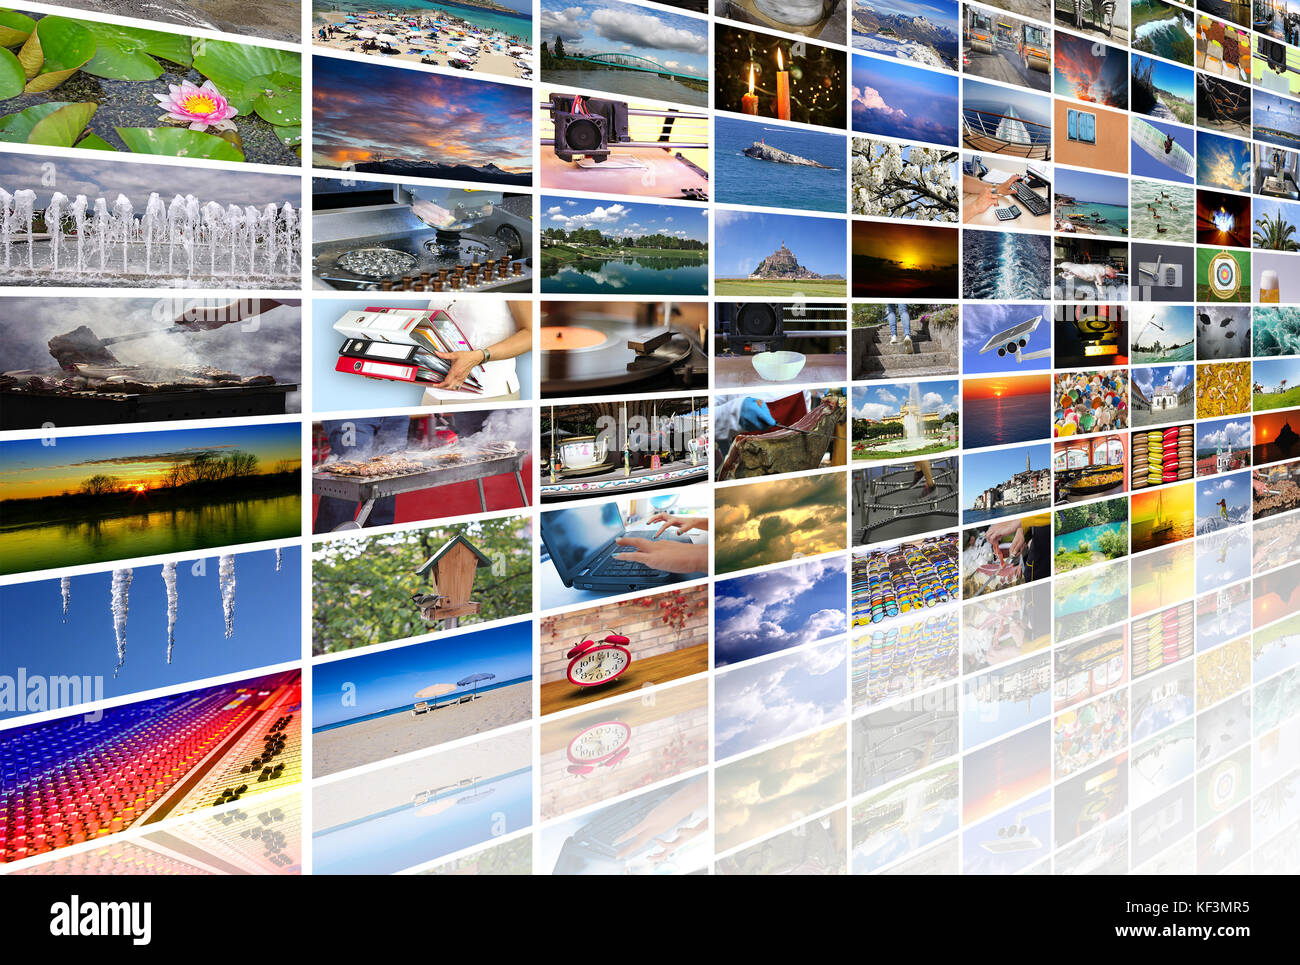 Big multimedia video and image wall of the TV screen - Stock Image